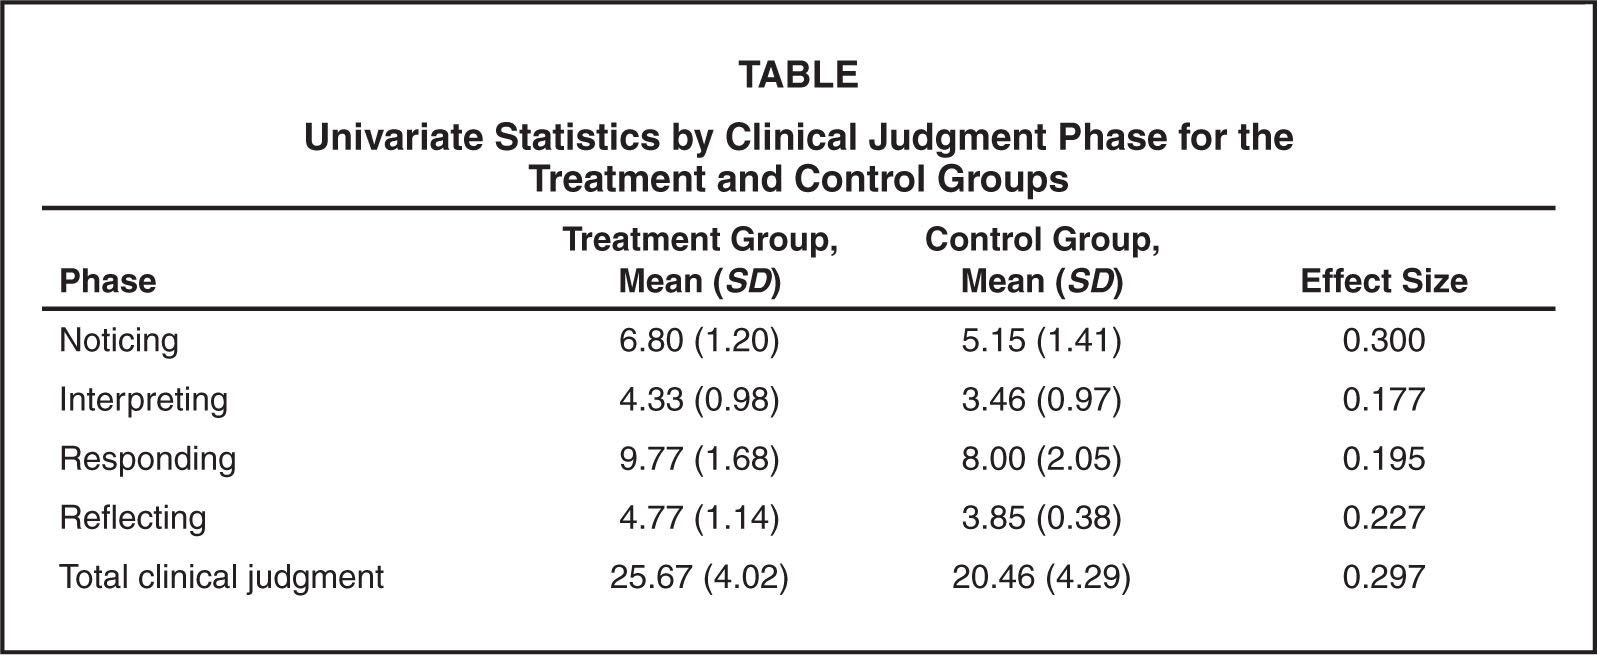 Univariate Statistics by Clinical Judgment Phase for the Treatment and Control Groups